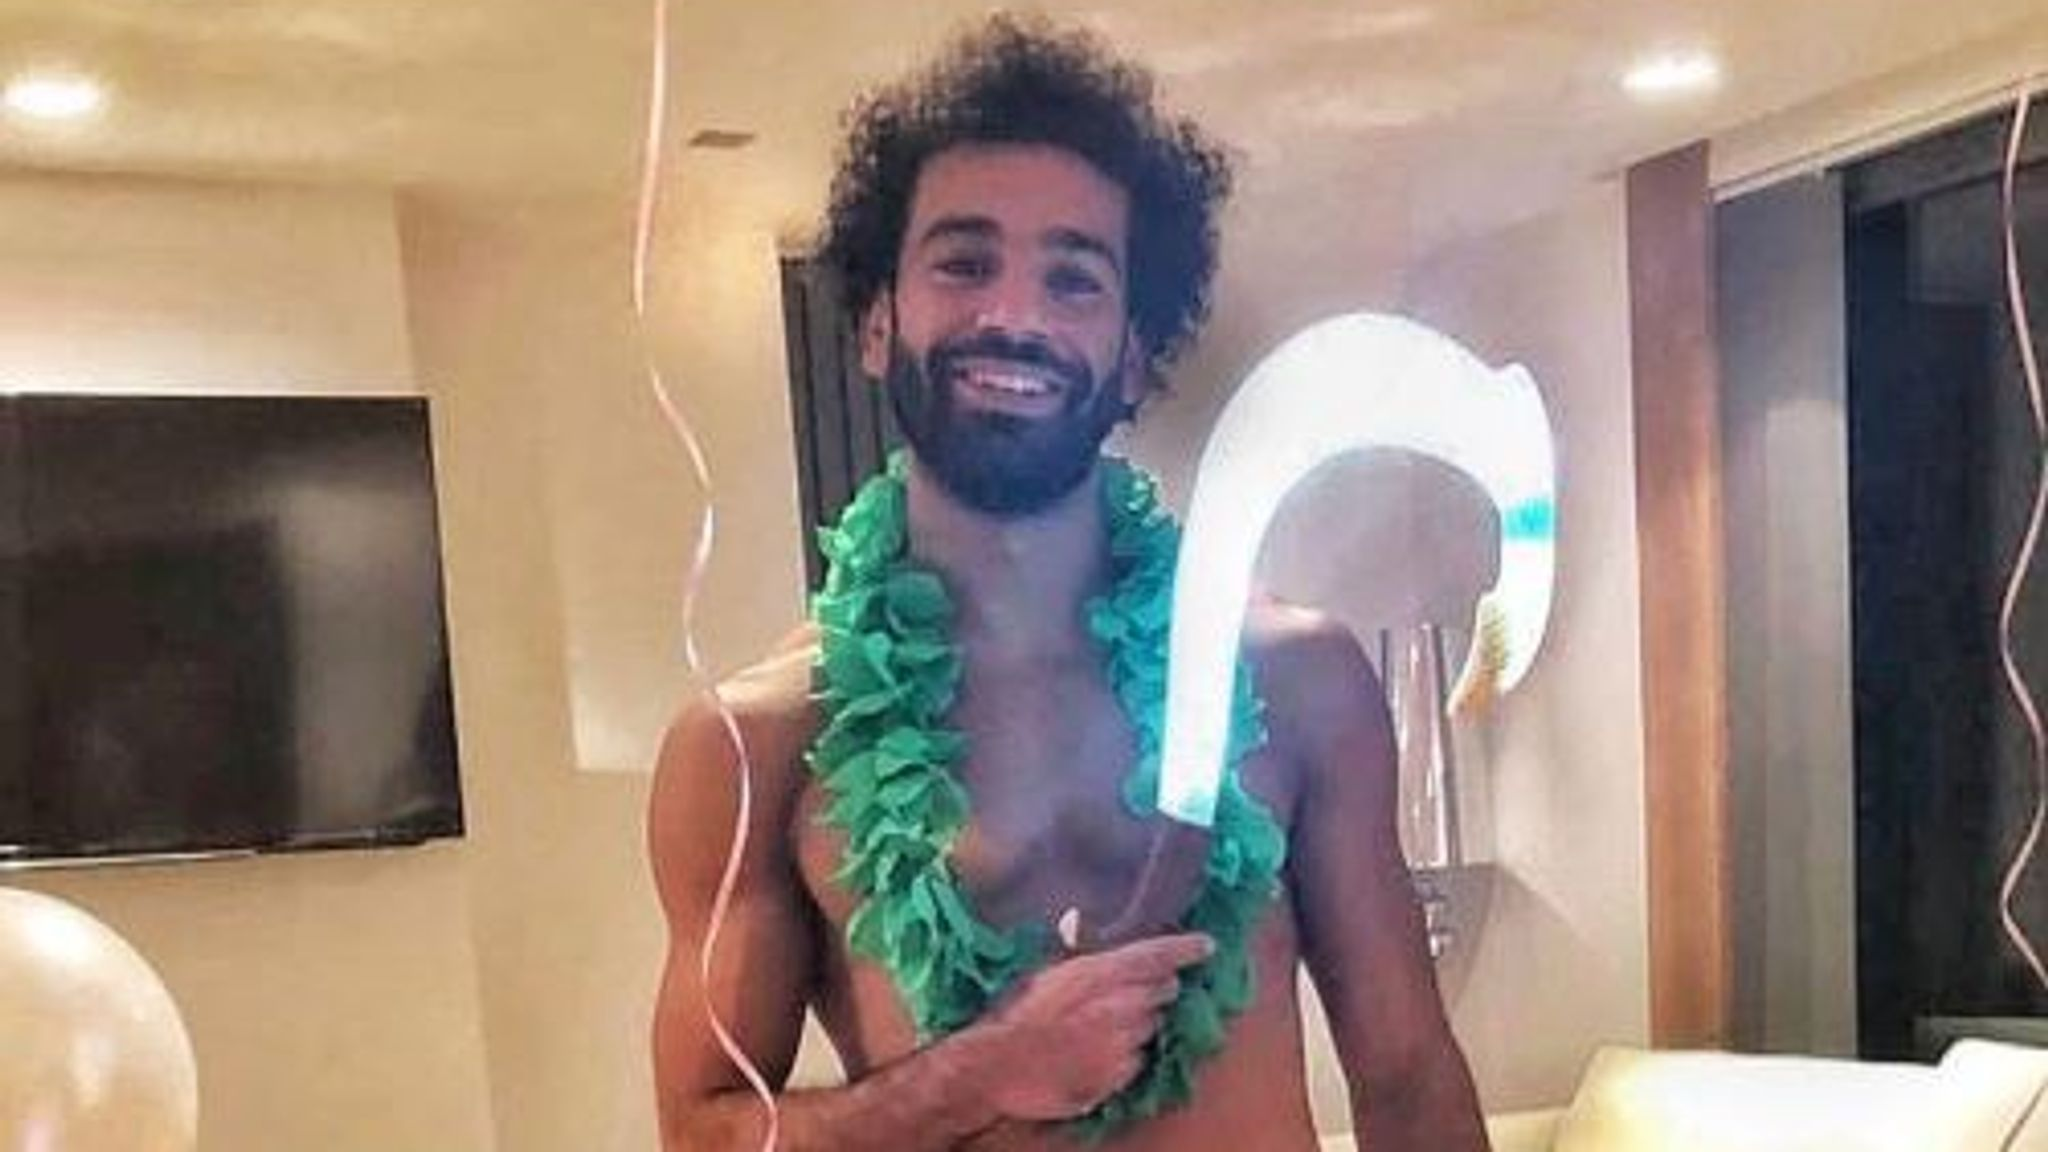 Mohamed Salah: Liverpool star dresses up as Disney character for daughter's birthday